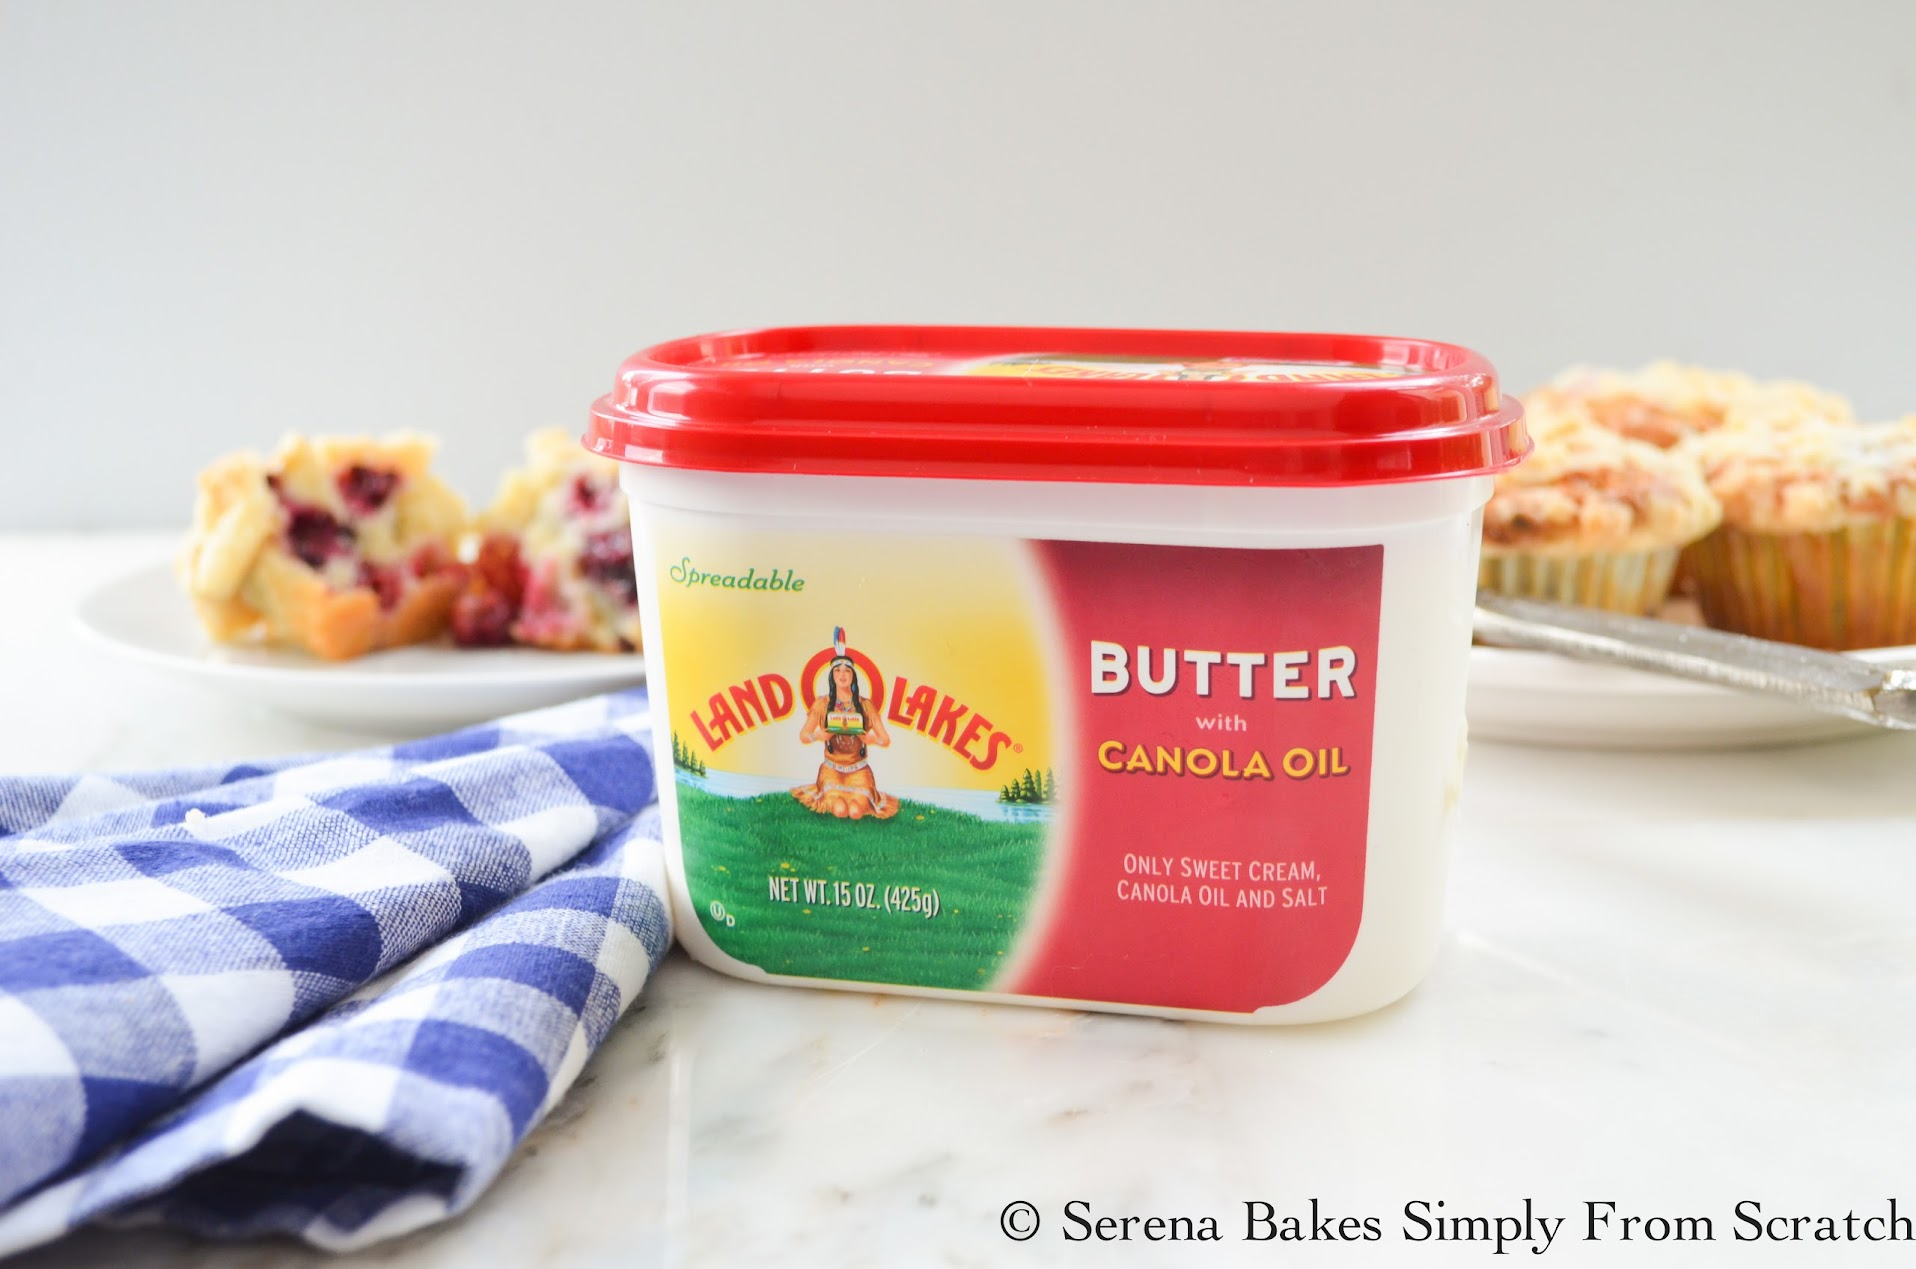 LAND O LAKES Butter with Canola Oil and Blackberry Muffins